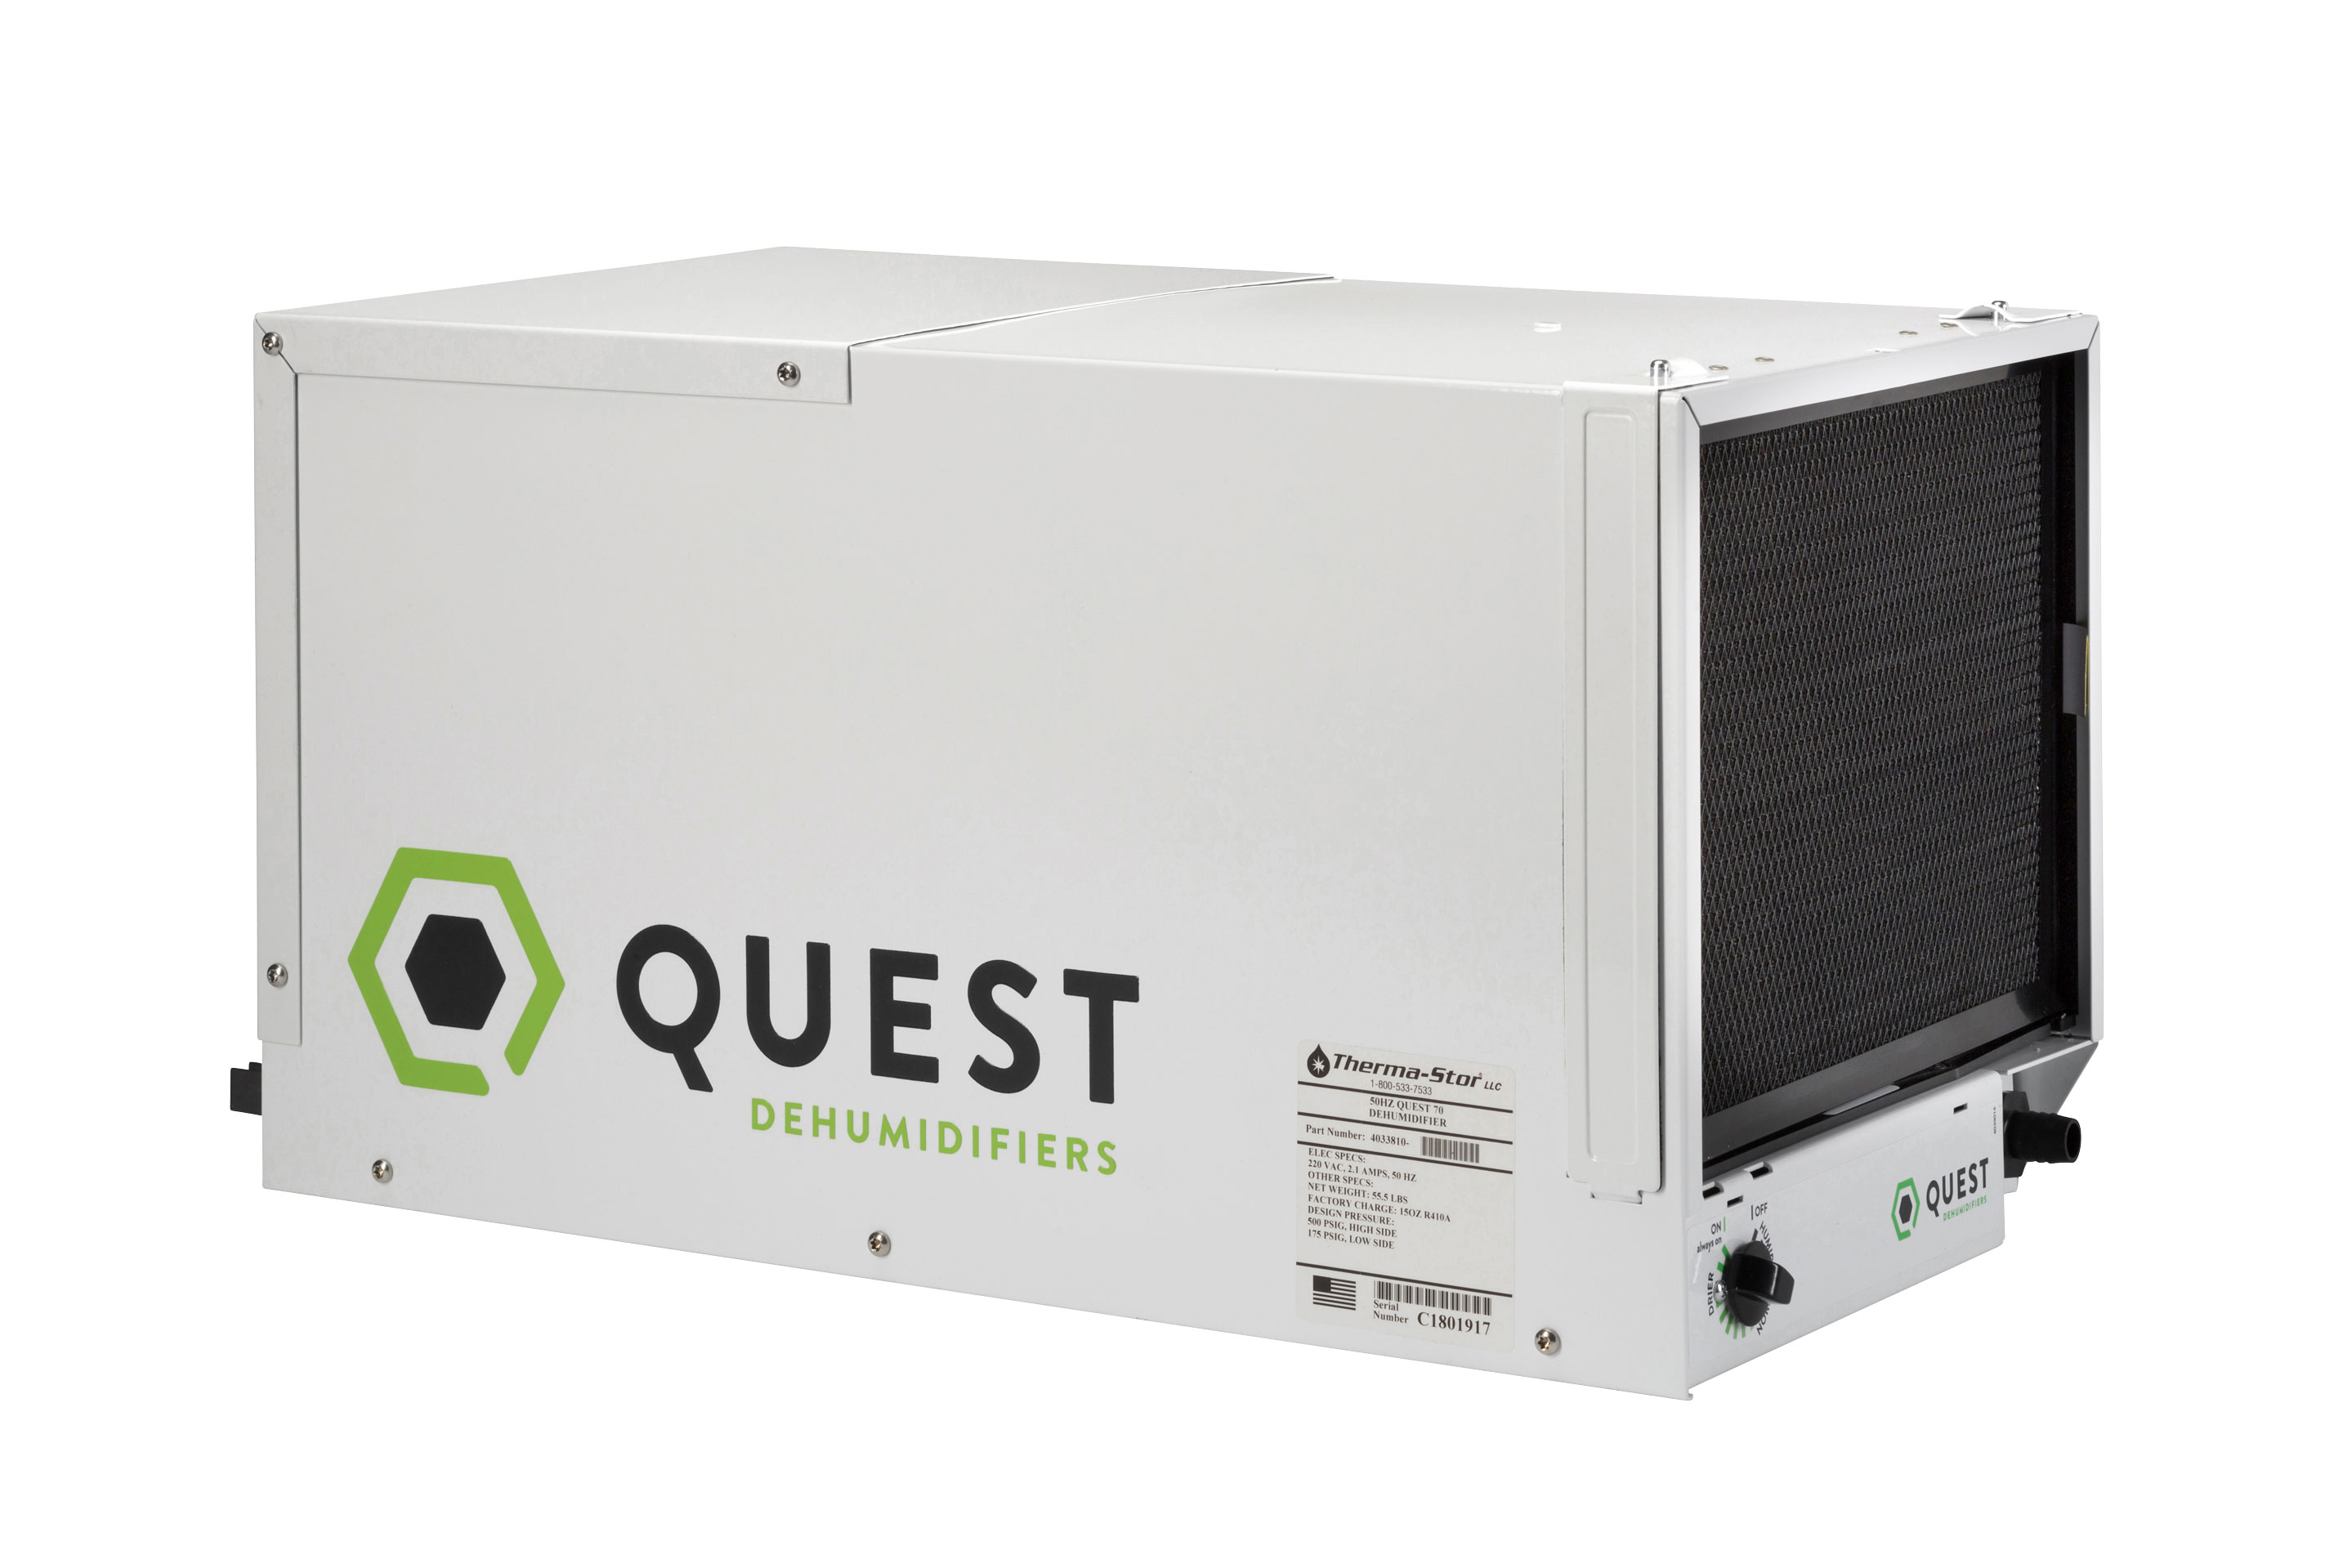 The Quest 70 Dehumidifier under review by Hydromag